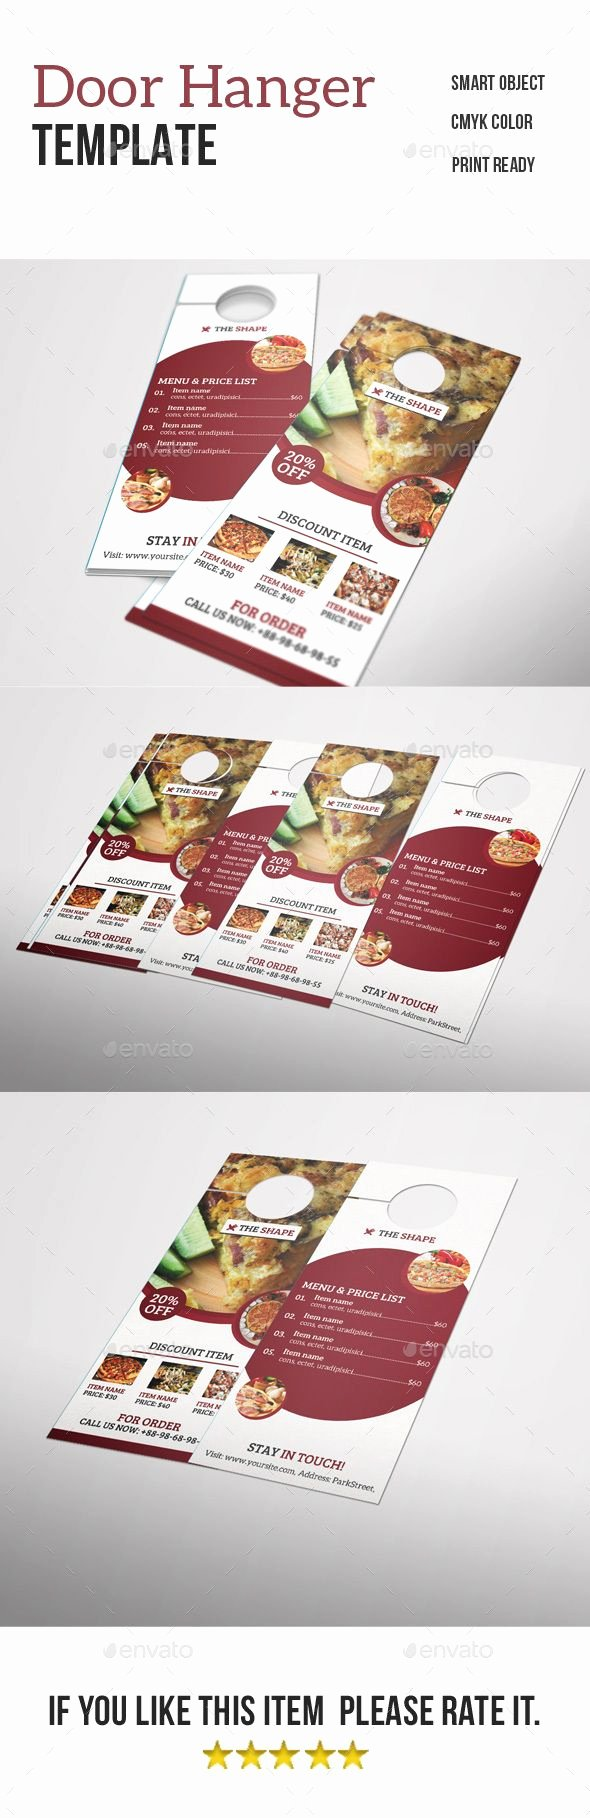 Door Hanger Template Psd Luxury Best 25 Door Hanger Template Ideas On Pinterest